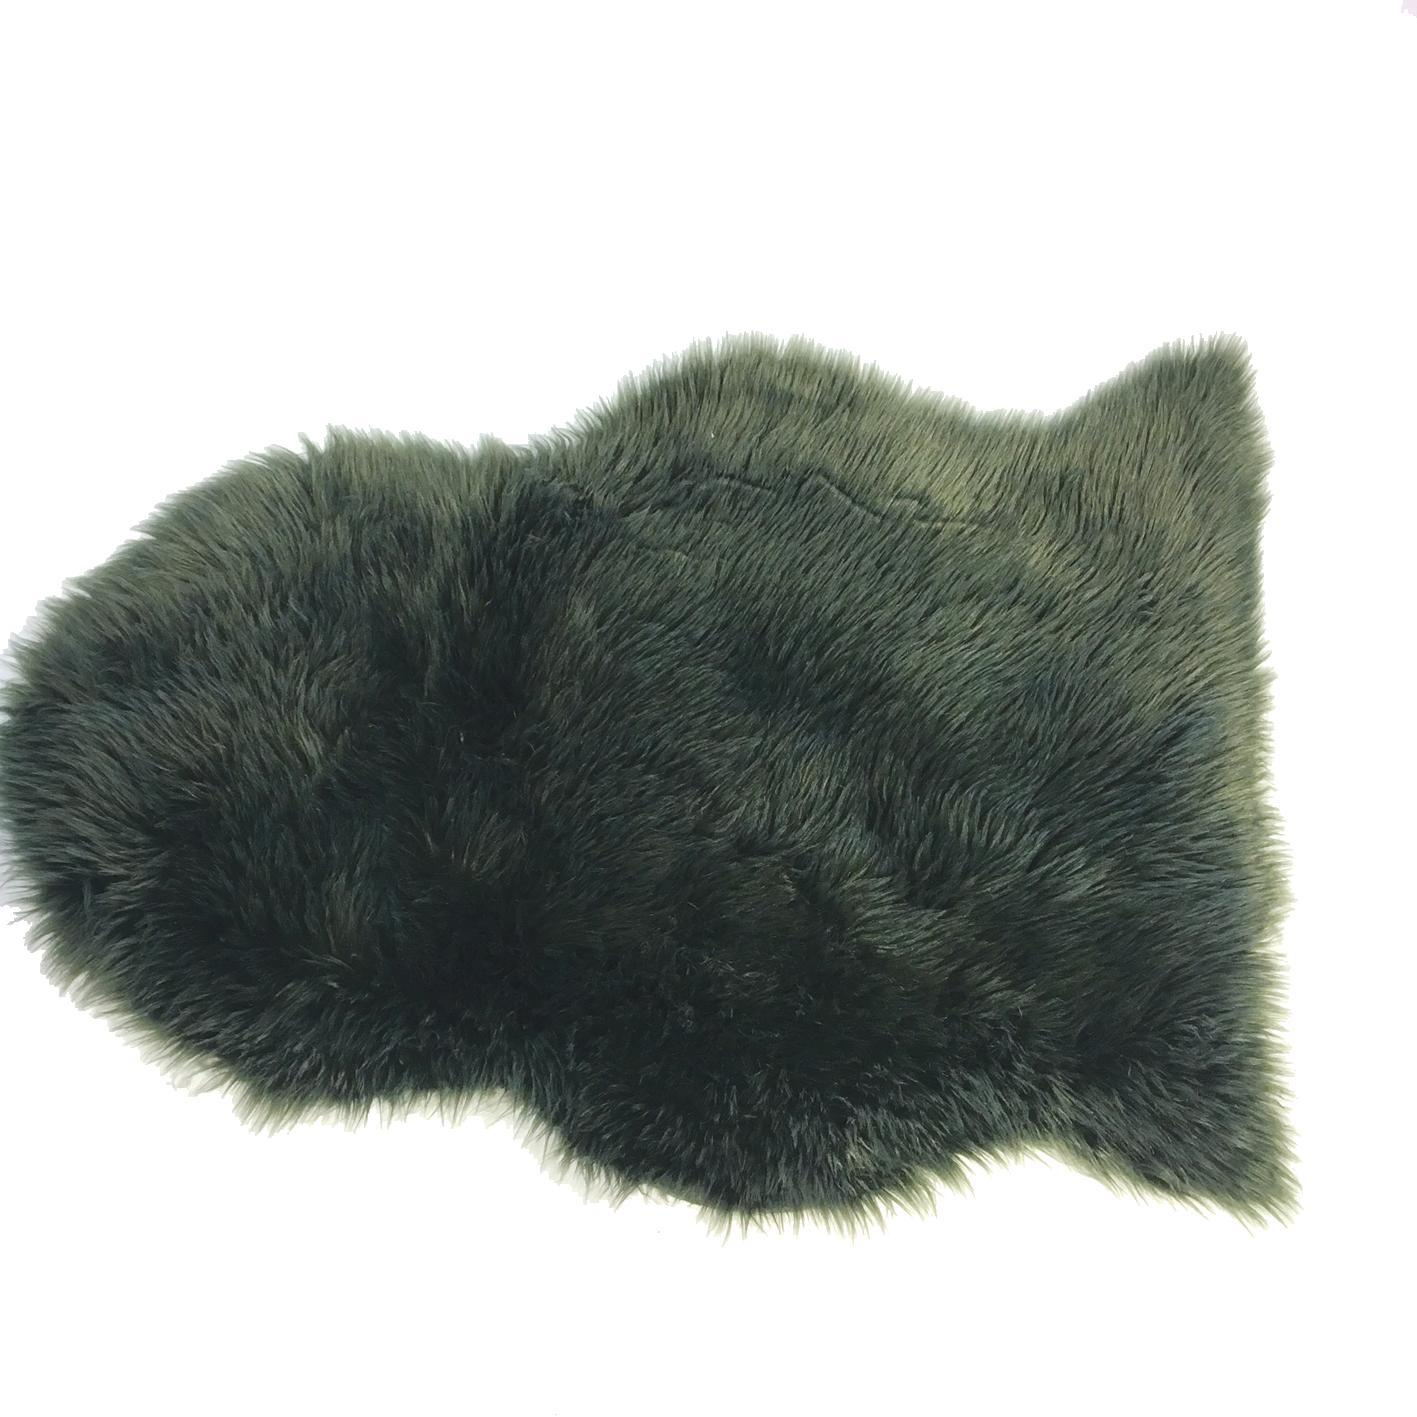 Artificial Sheepskin Dust Gree